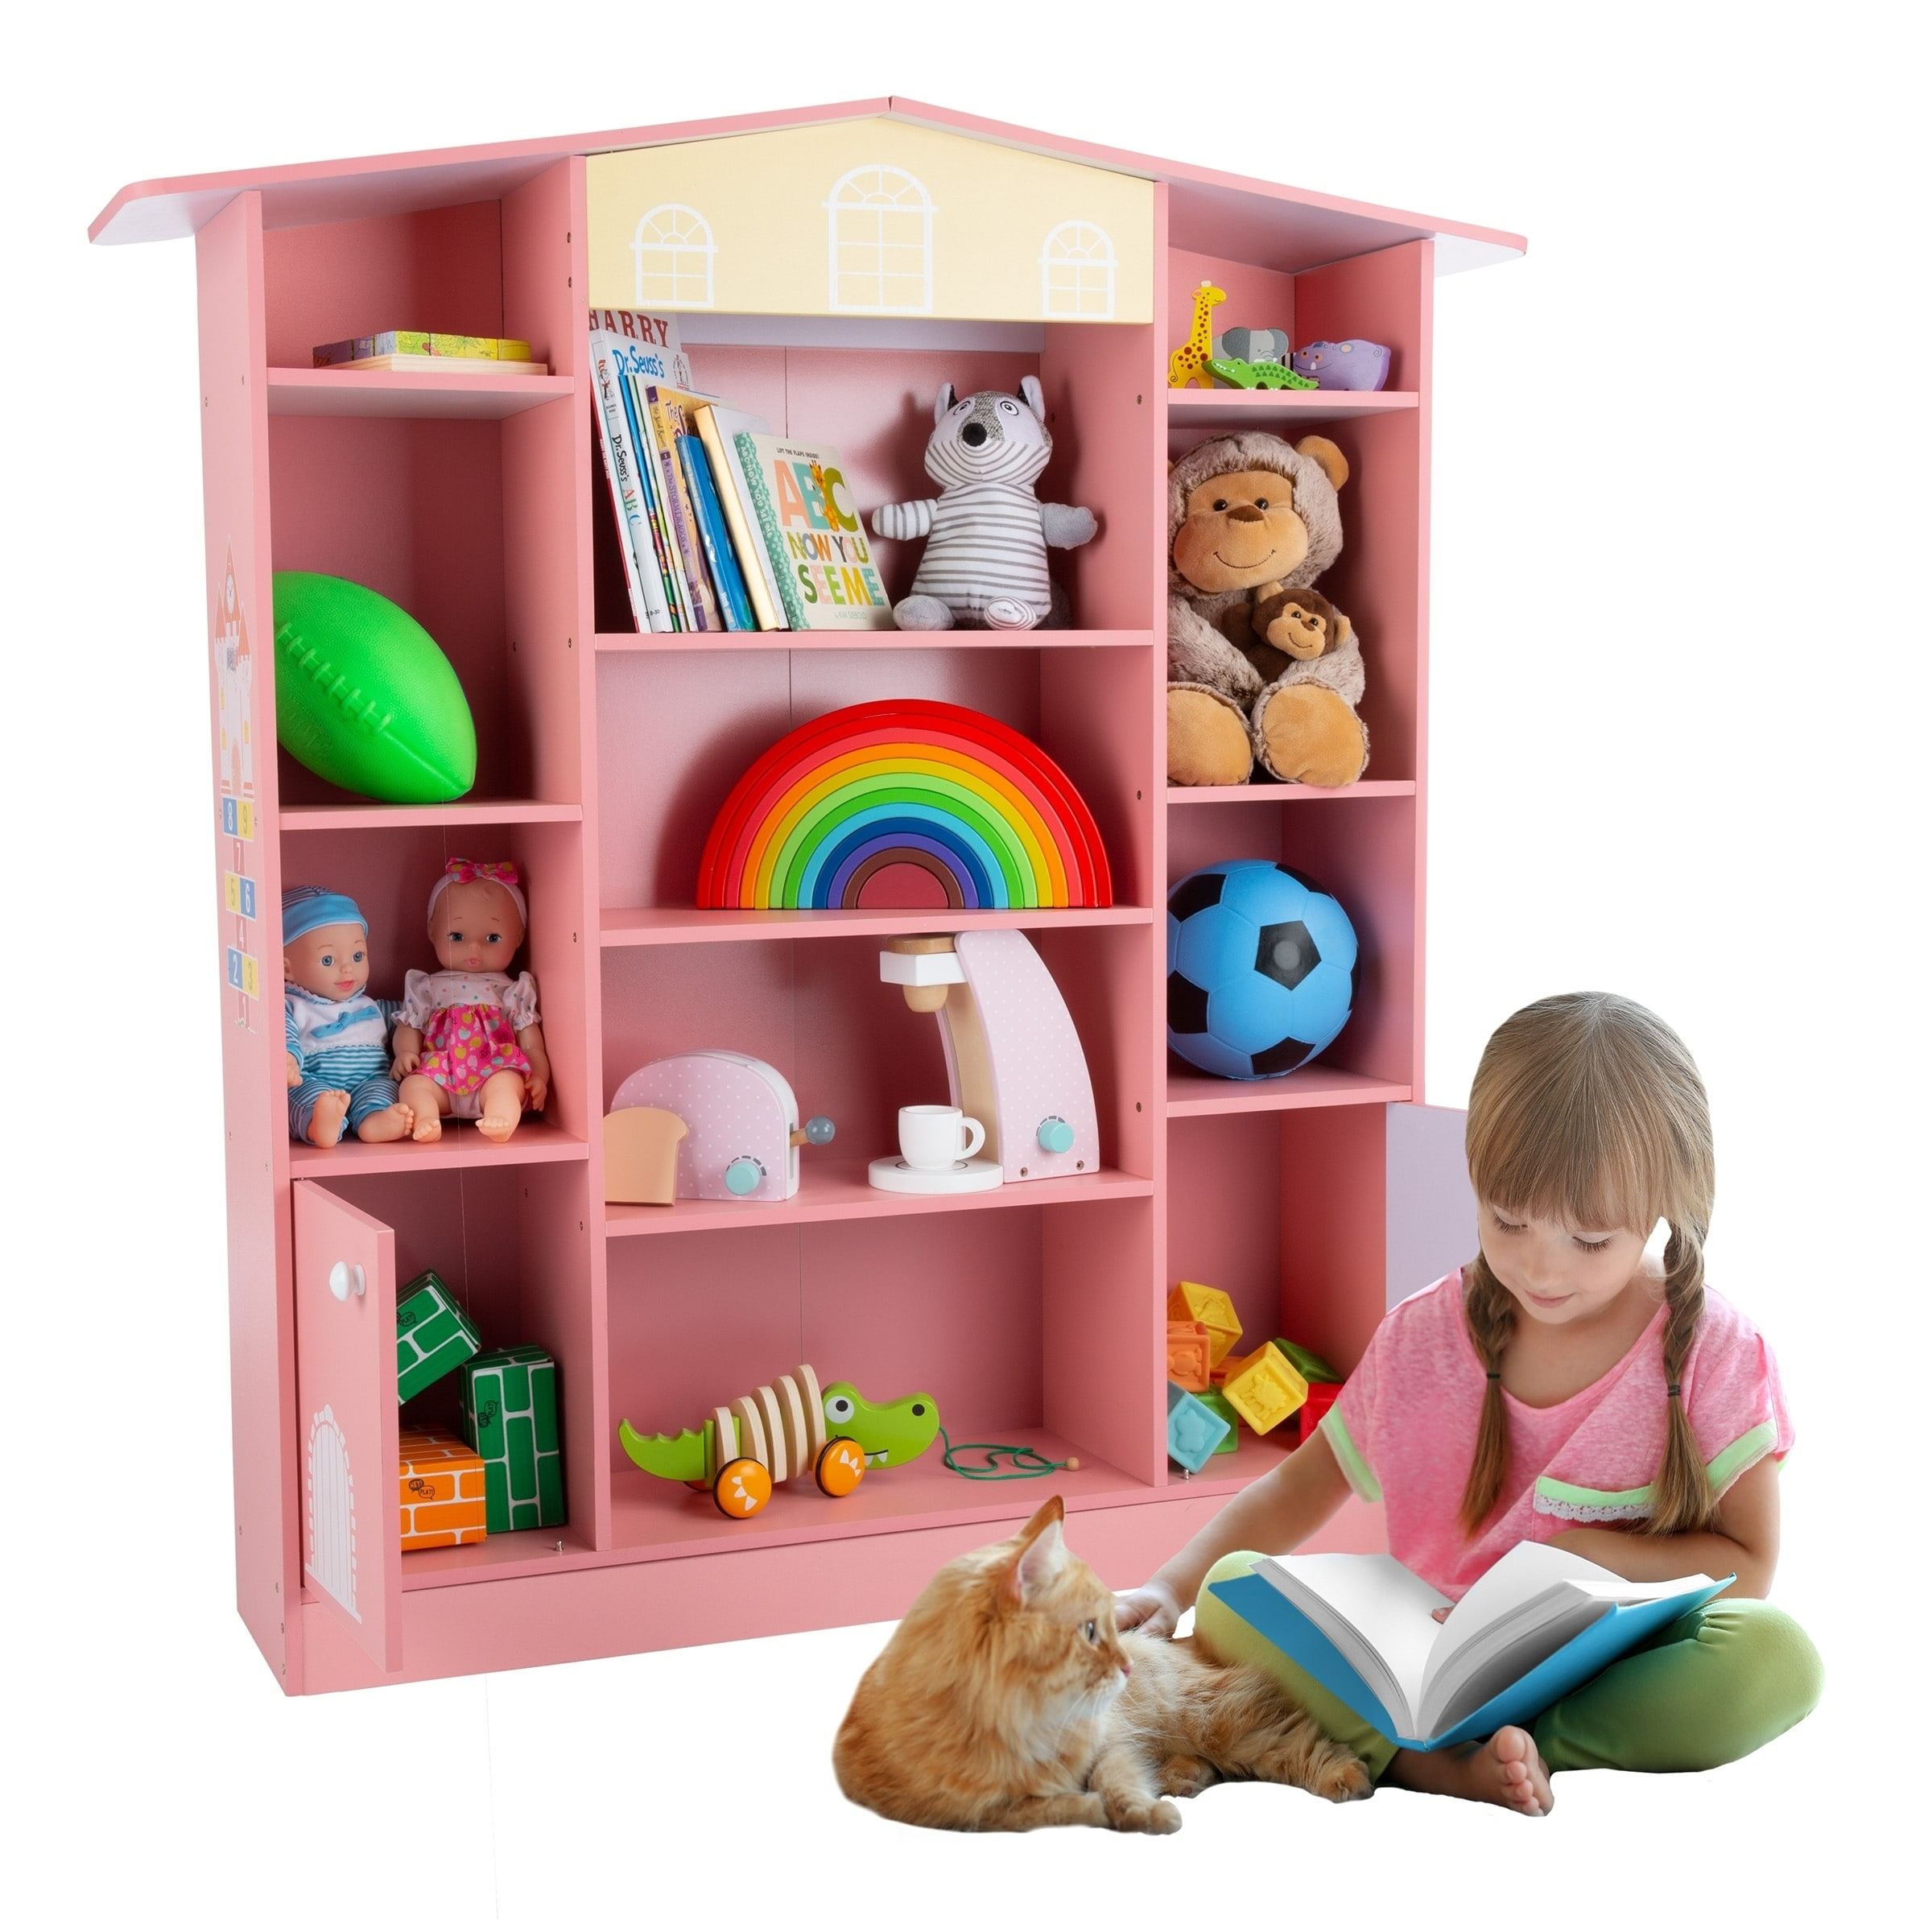 Dollhouse Shaped Bookcase Cottage Design Furniture For Books Or Toys For Children S Bedroom Or Playroom By Hey Play Pink